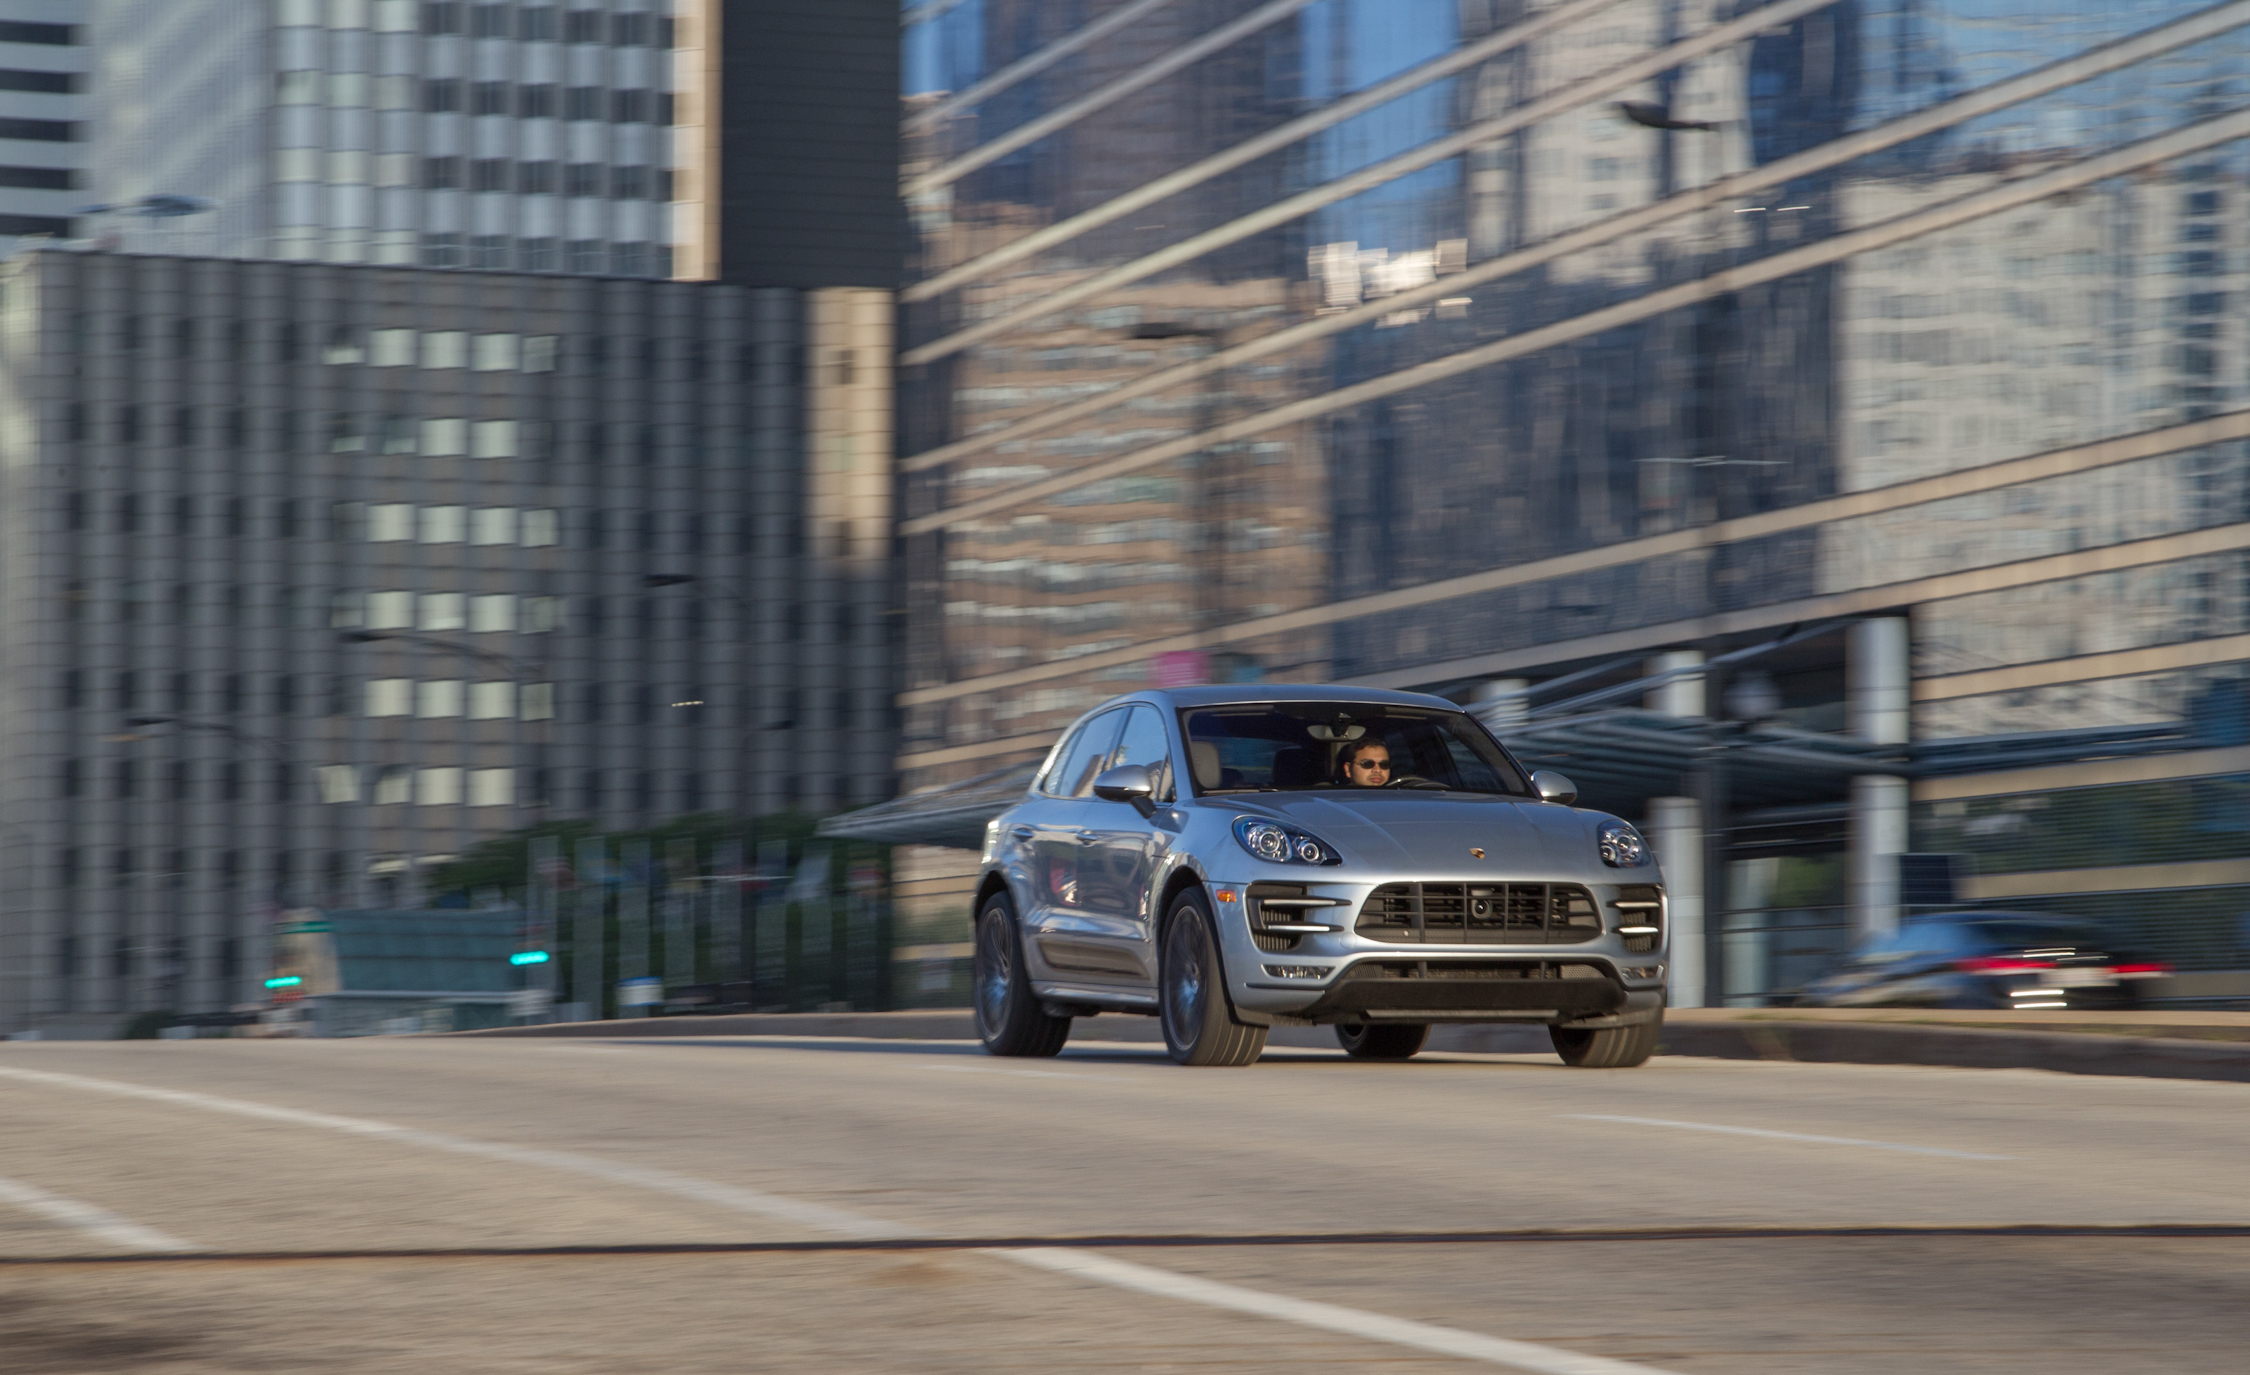 2015 Porsche Macan Turbo (View 15 of 20)